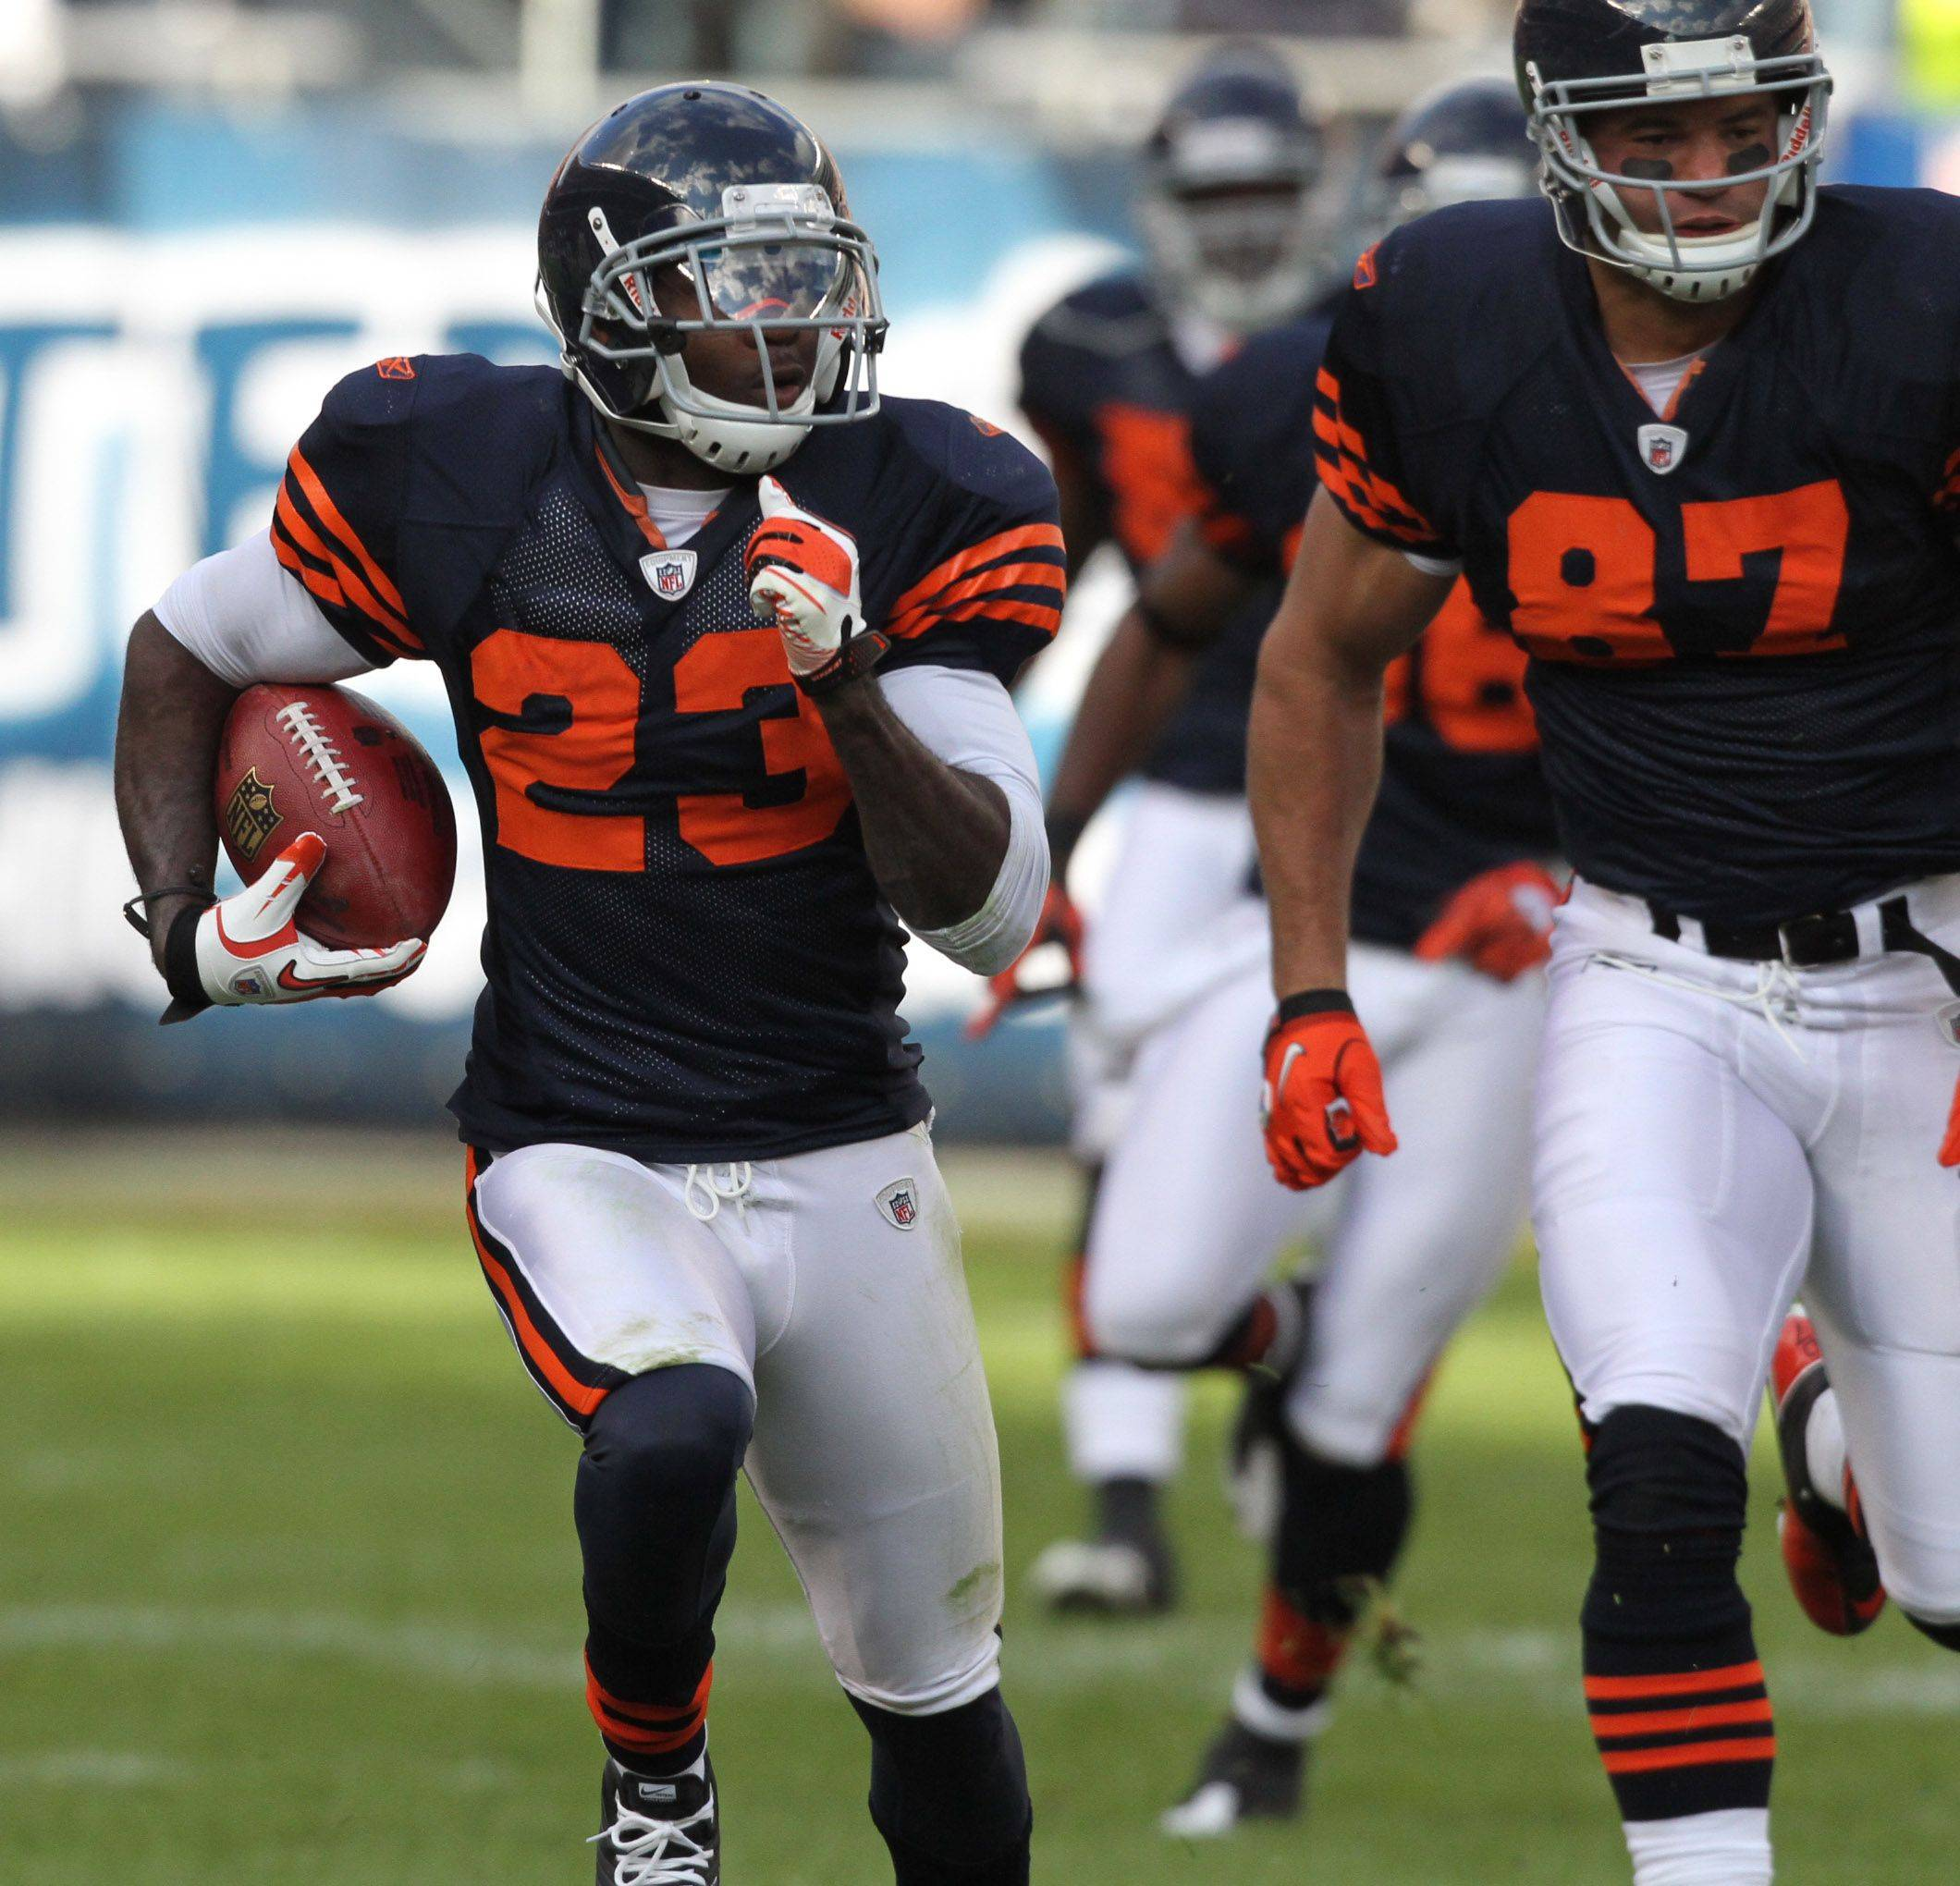 Chicago Bears's Devin Hester picks up big yardage on punt return against Minnesota Vikings in the second half.